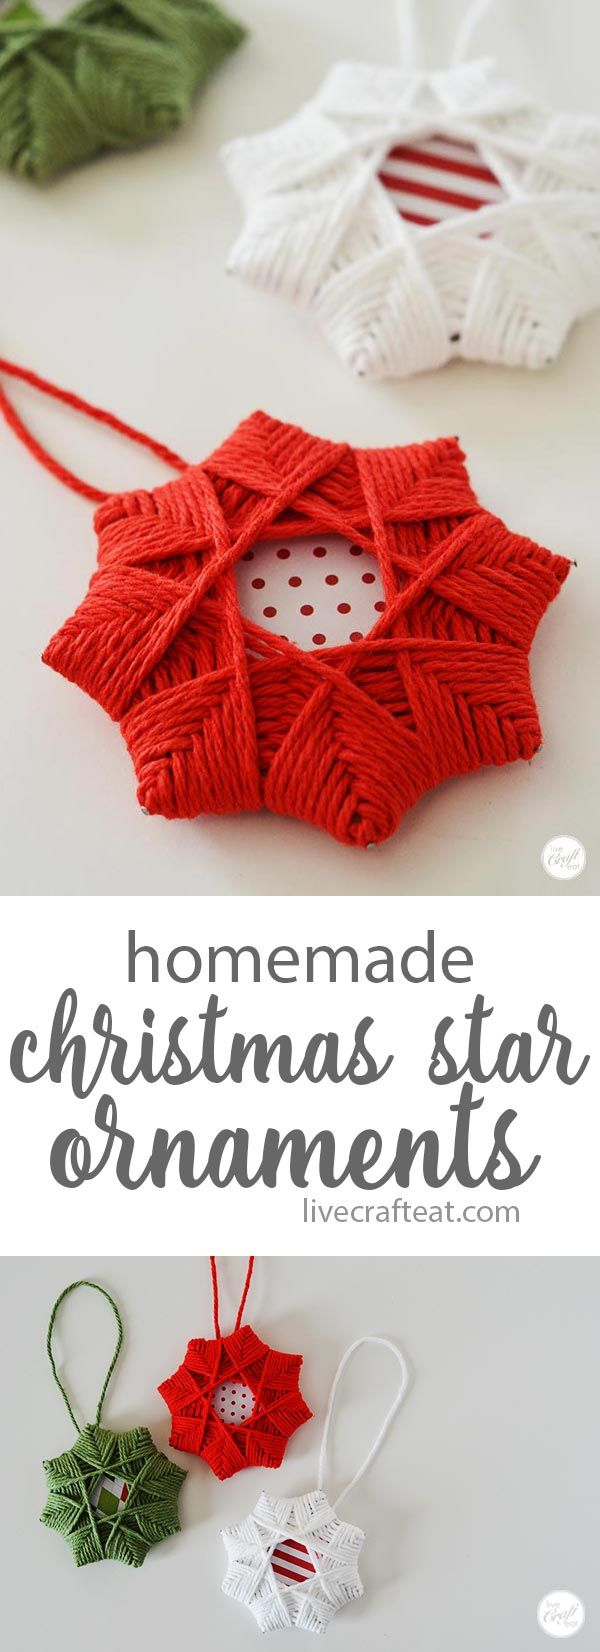 Make This Easy Diy Christmas Tree Star Ornament By Weaving Yarn Around  Cardboard Squares Easily Doable For Kids And Adults And Cute Enough For  Your Tree!